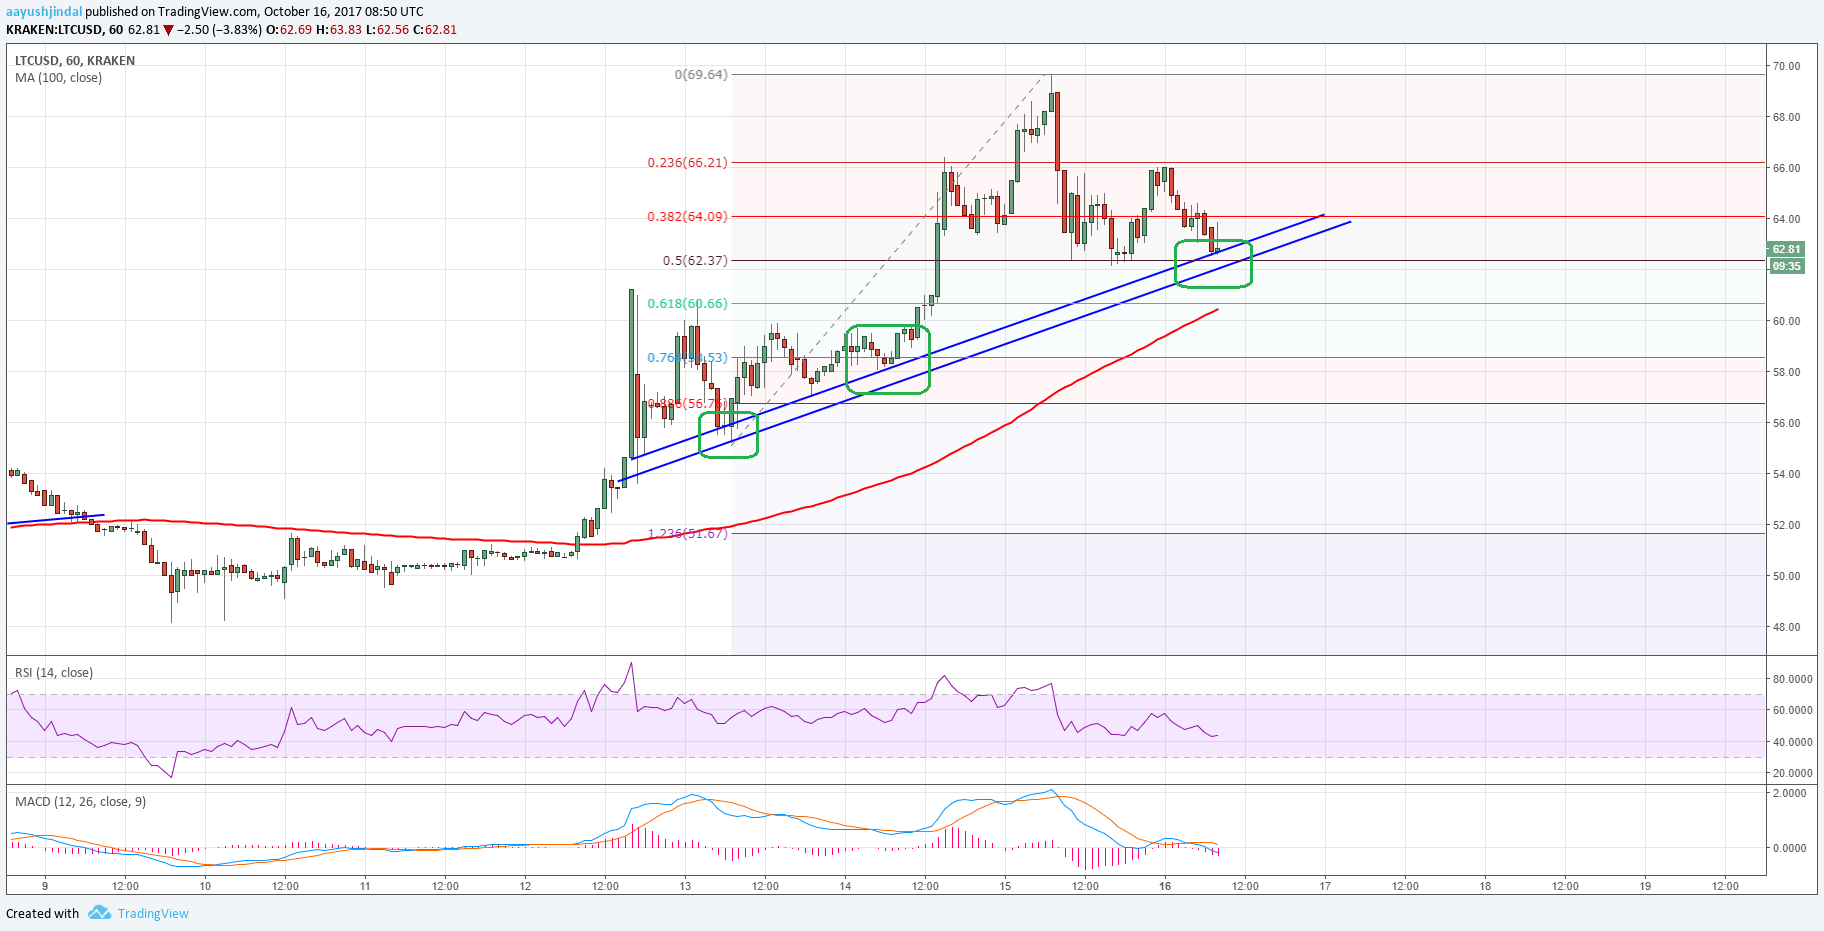 Litecoin price surged higher recently and moved above $60 against the US Dollar. LTC/USD is currently correcting lower and testing a major support at $62.00.  Key Talking Points  Litecoin price gained pace during the past few days and settled above $60.00 against the US Dollar. There is a crucial bullish trend line with support at $62.00 forming on the hourly chart of LTC/USD. The pair is currently trading near the trend line support and remains in an uptrend above $60.00. Litecoin Price Forecast There was a nice upside move from the $48.00 swing low in Litecoin price against the US Dollar. The price broke many resistances on the way up such as $50.00, $55.00 and $60.00, and formed a new monthly high at $69.64.  Later, a correction wave was initiated and the price moved below the 38.2% Fib retracement level of the last wave from the $55.00 low to $69.64 high. However, the downside move was protected by a crucial bullish trend line with support at $62.00 on the hourly chart of LTC/USD (data feed of Kraken exchange).  Moreover, the 50% Fib retracement level of the last wave from the $55.00 low to $69.64 high is also acting as a support near $62.35. Therefore, the $62.00 support zone is significant and must hold the current decline.  Below $62.00, the pair could even test the 61.8% Fib retracement level of the last wave from the $55.00 low to $69.64 high at $60.66. The mentioned $60.66 support is also close to the 100 hourly simple moving average.  As long as the pair is above the $60.00 handle, it remains in an uptrend. It will most likely resume its uptrend and trade back towards $64.00. Above $64.00, the pair would look to test the $68.00 resistance zone.  The hourly RSI for LTC/USD is currently below the 50 level, but stable. The MACD is showing a few bearish signs with a divergence. To sum up, it all depends on the $62.00 and $60.00 support levels in the short term.   Trade safe traders and do not overtrade!